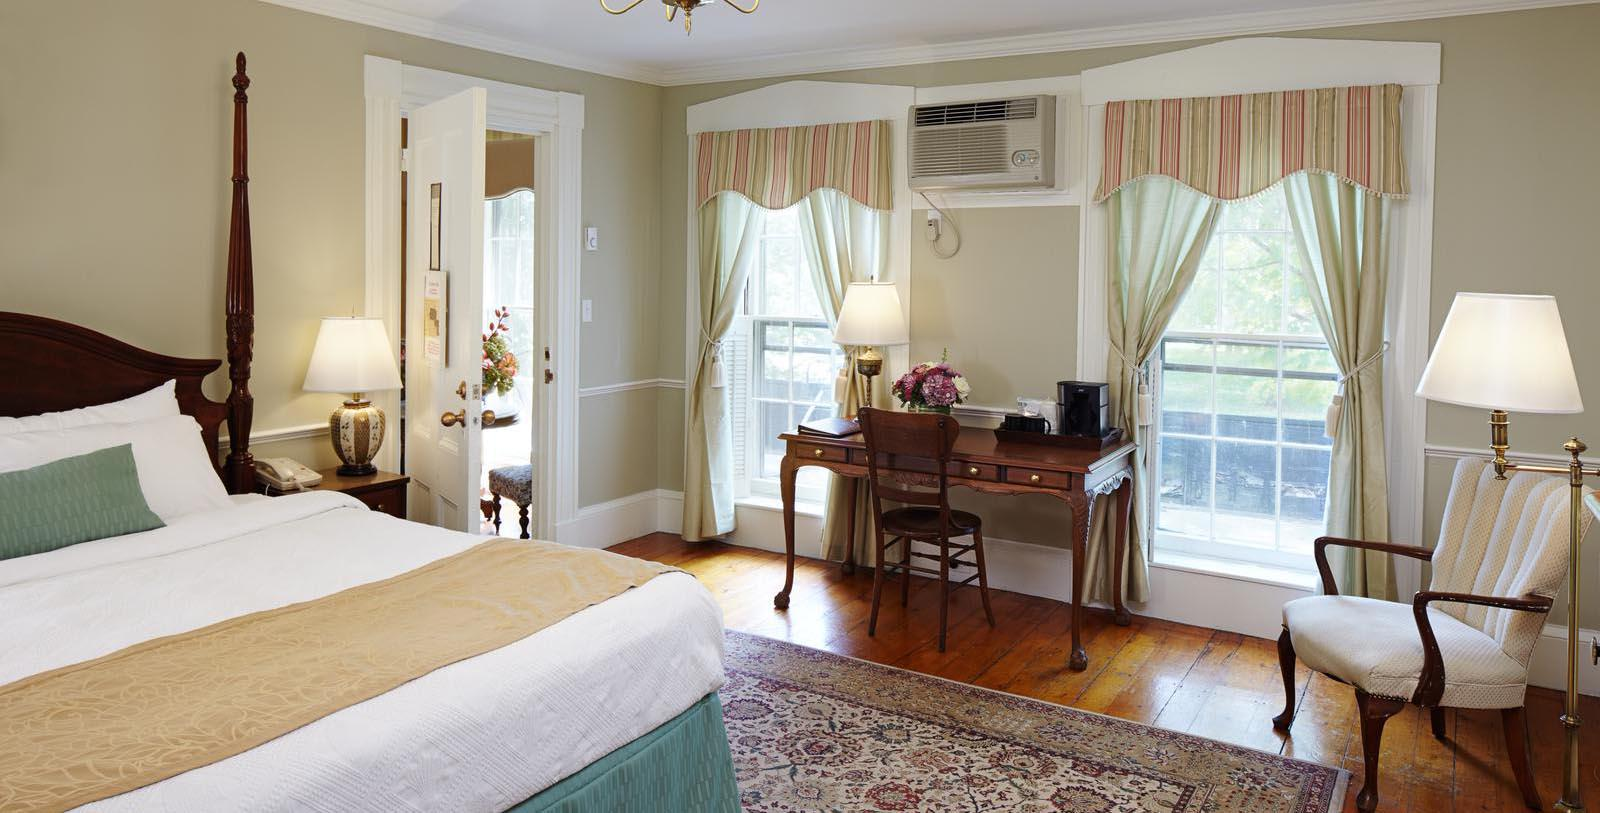 Image of Guestroom at Concord's Colonial Inn, 1716, Member of Historic Hotels of America, in Concord, Massachusetts Explore